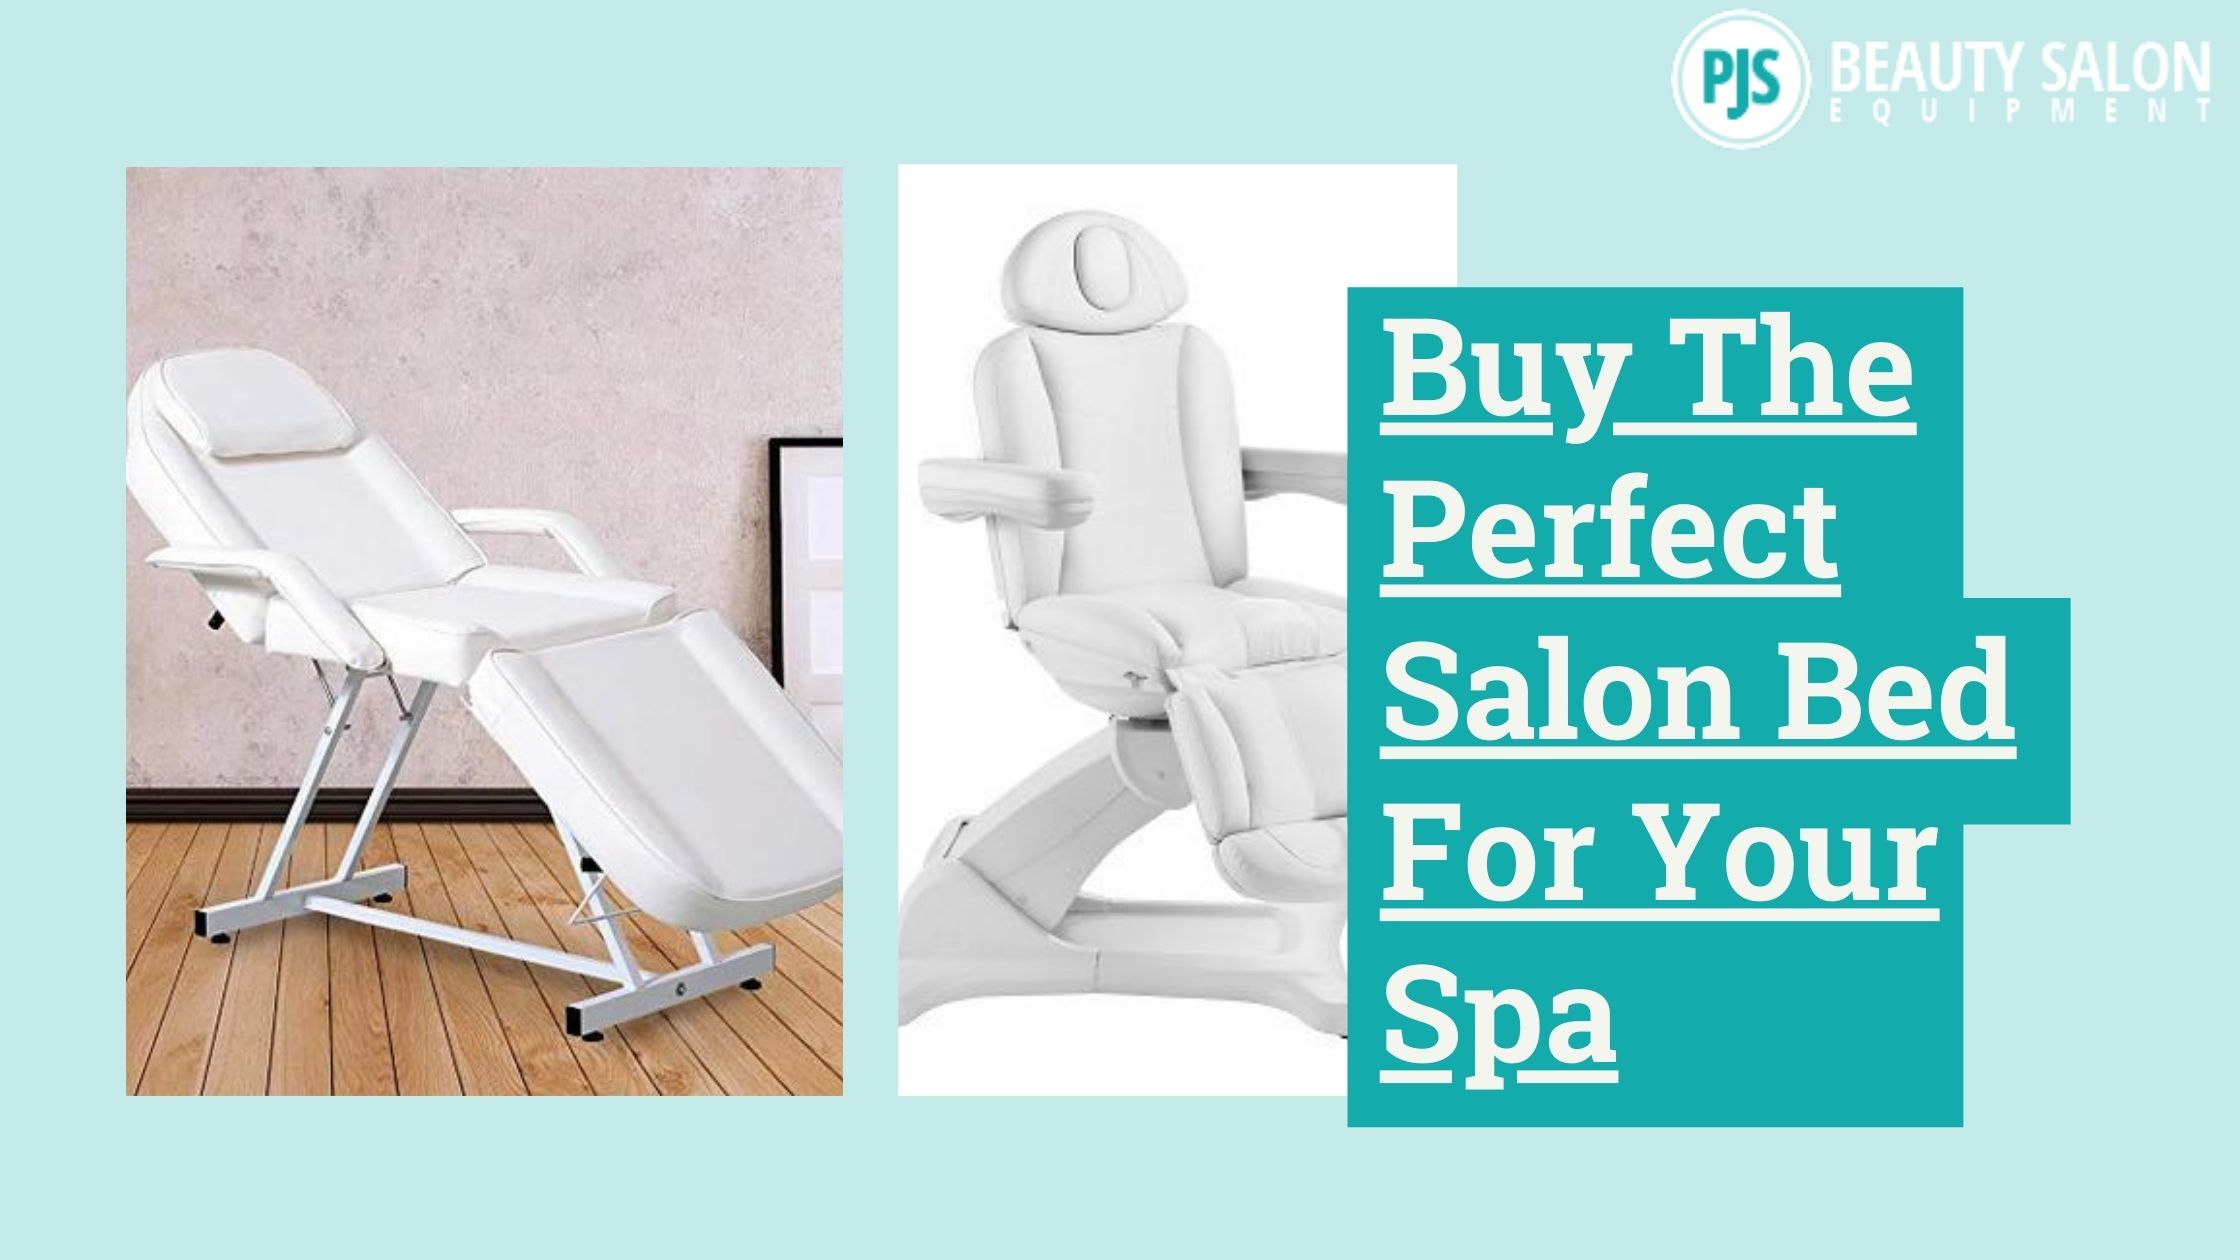 Buy The Perfect Salon Bed For Your Spa